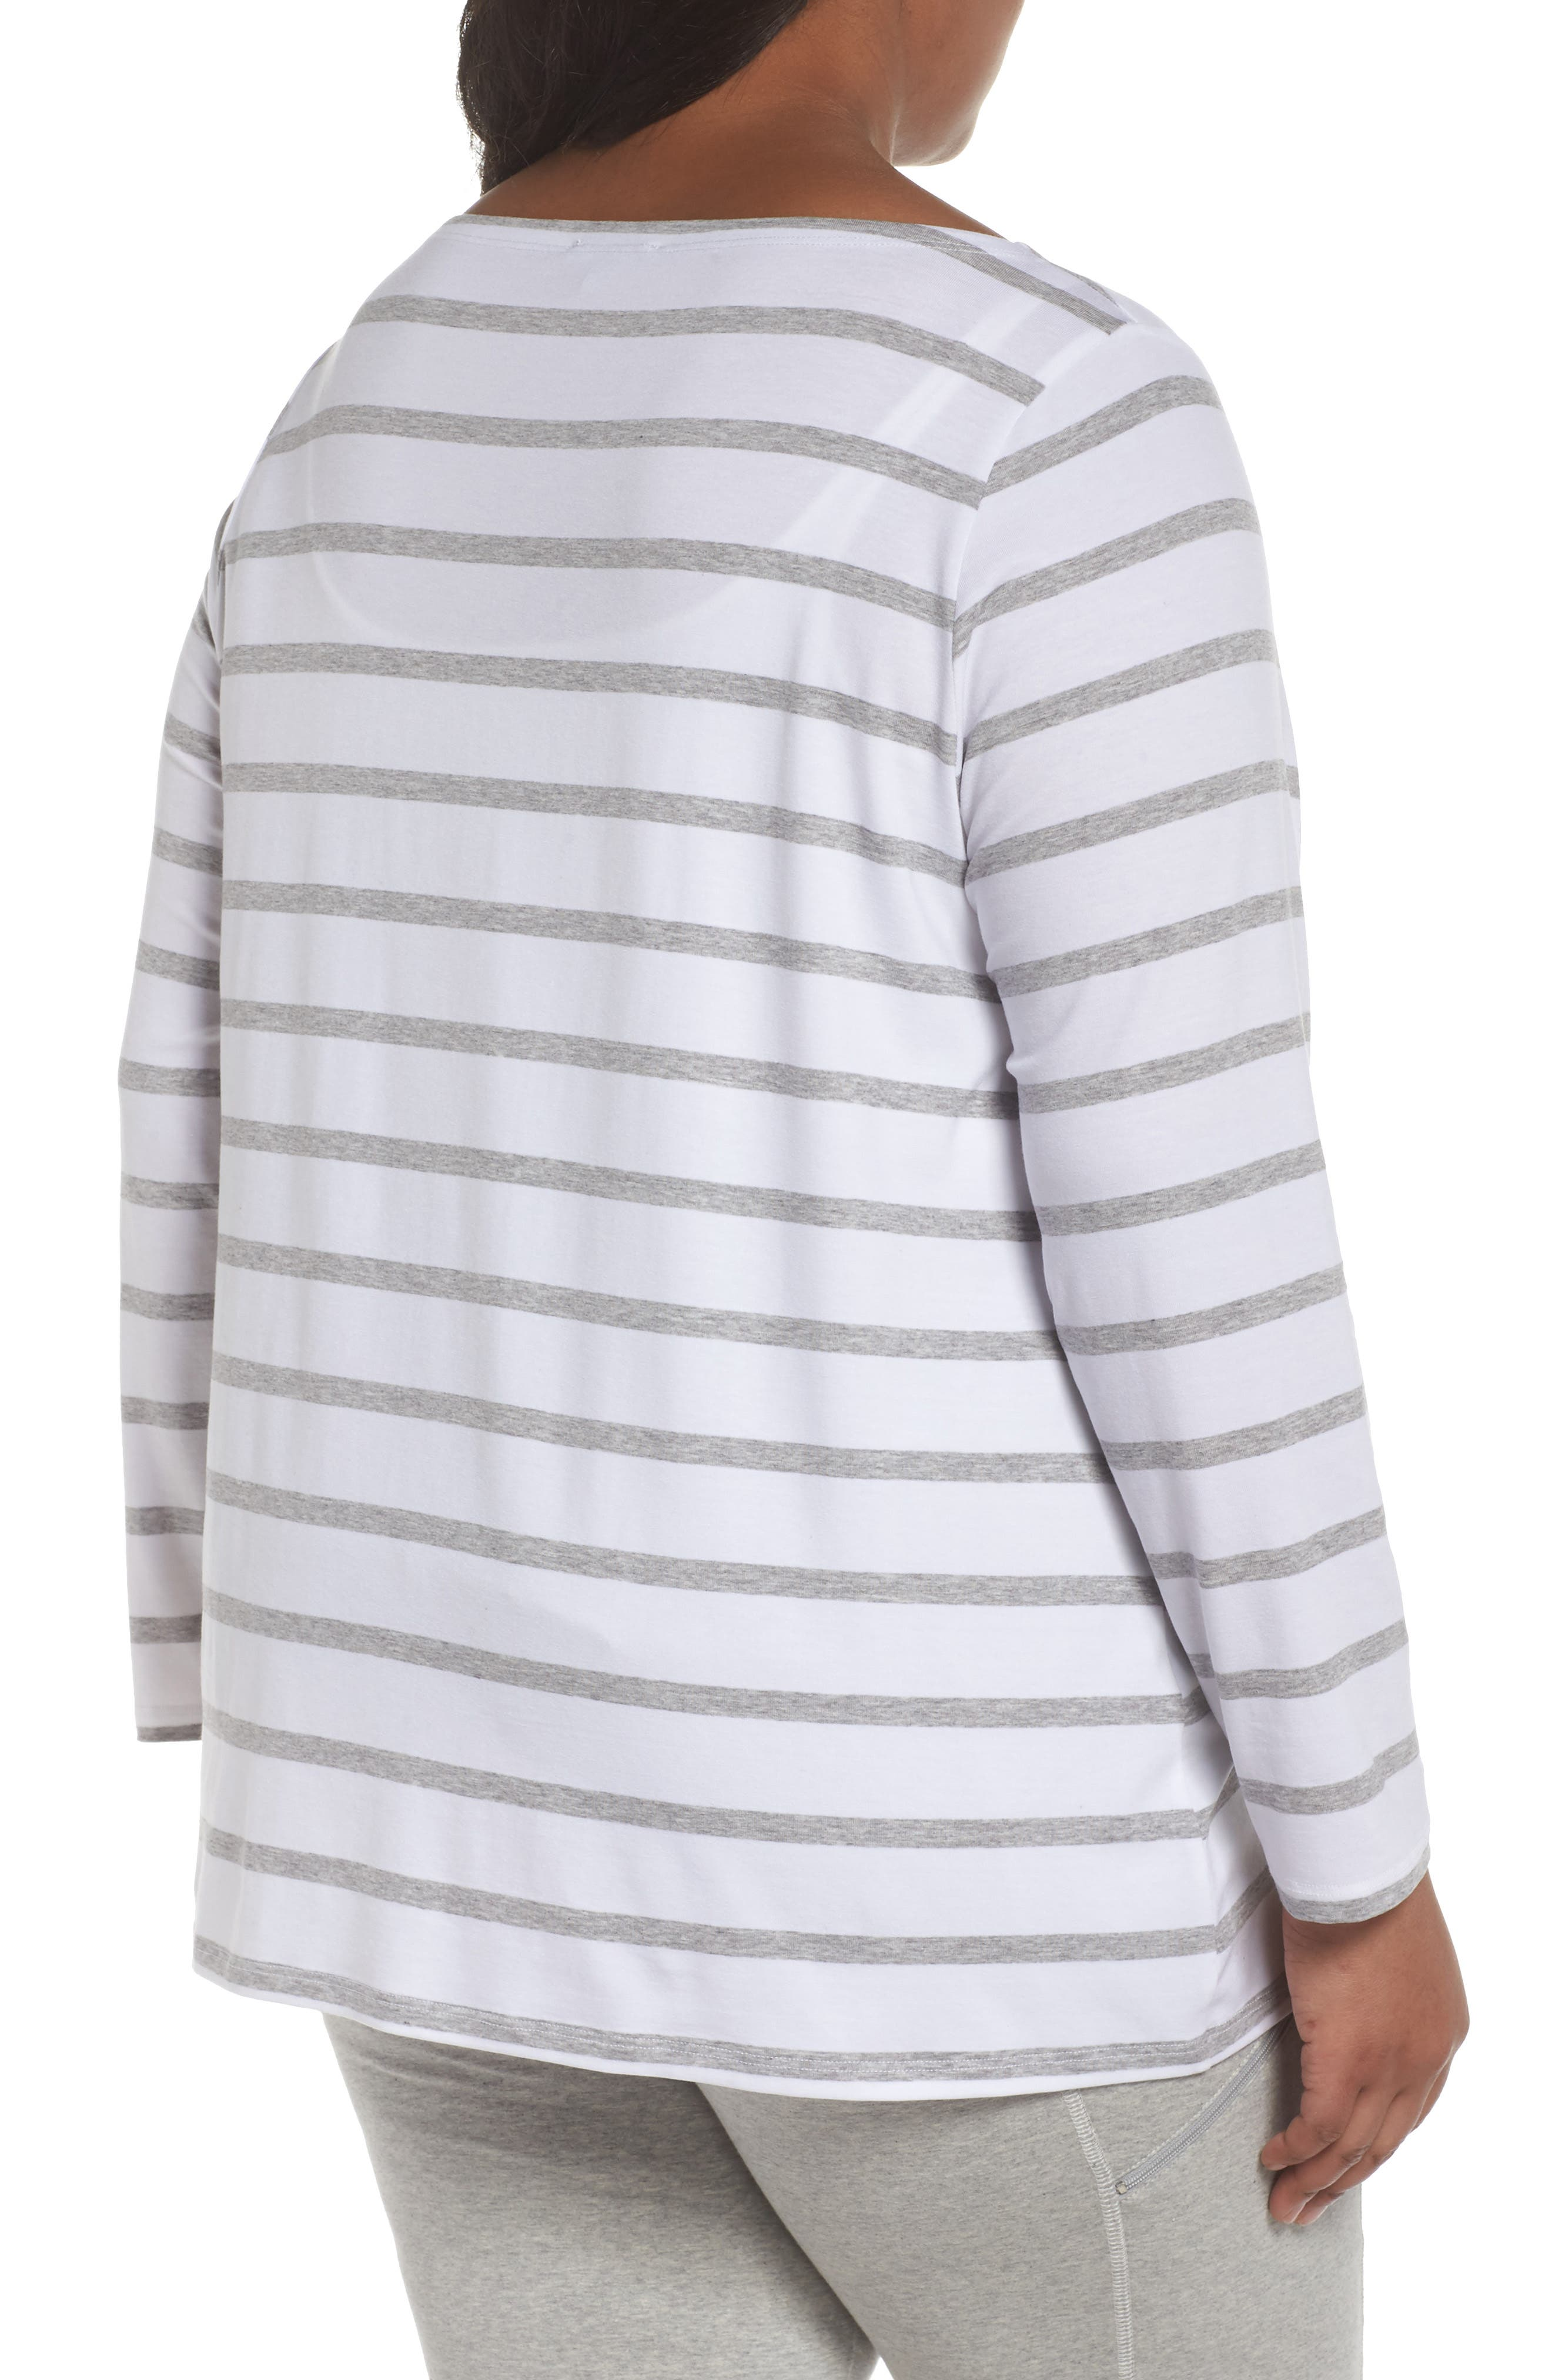 Stripe Stretch Tencel<sup>®</sup> Lyocell Top,                             Alternate thumbnail 2, color,                             White/ Dark Pearl